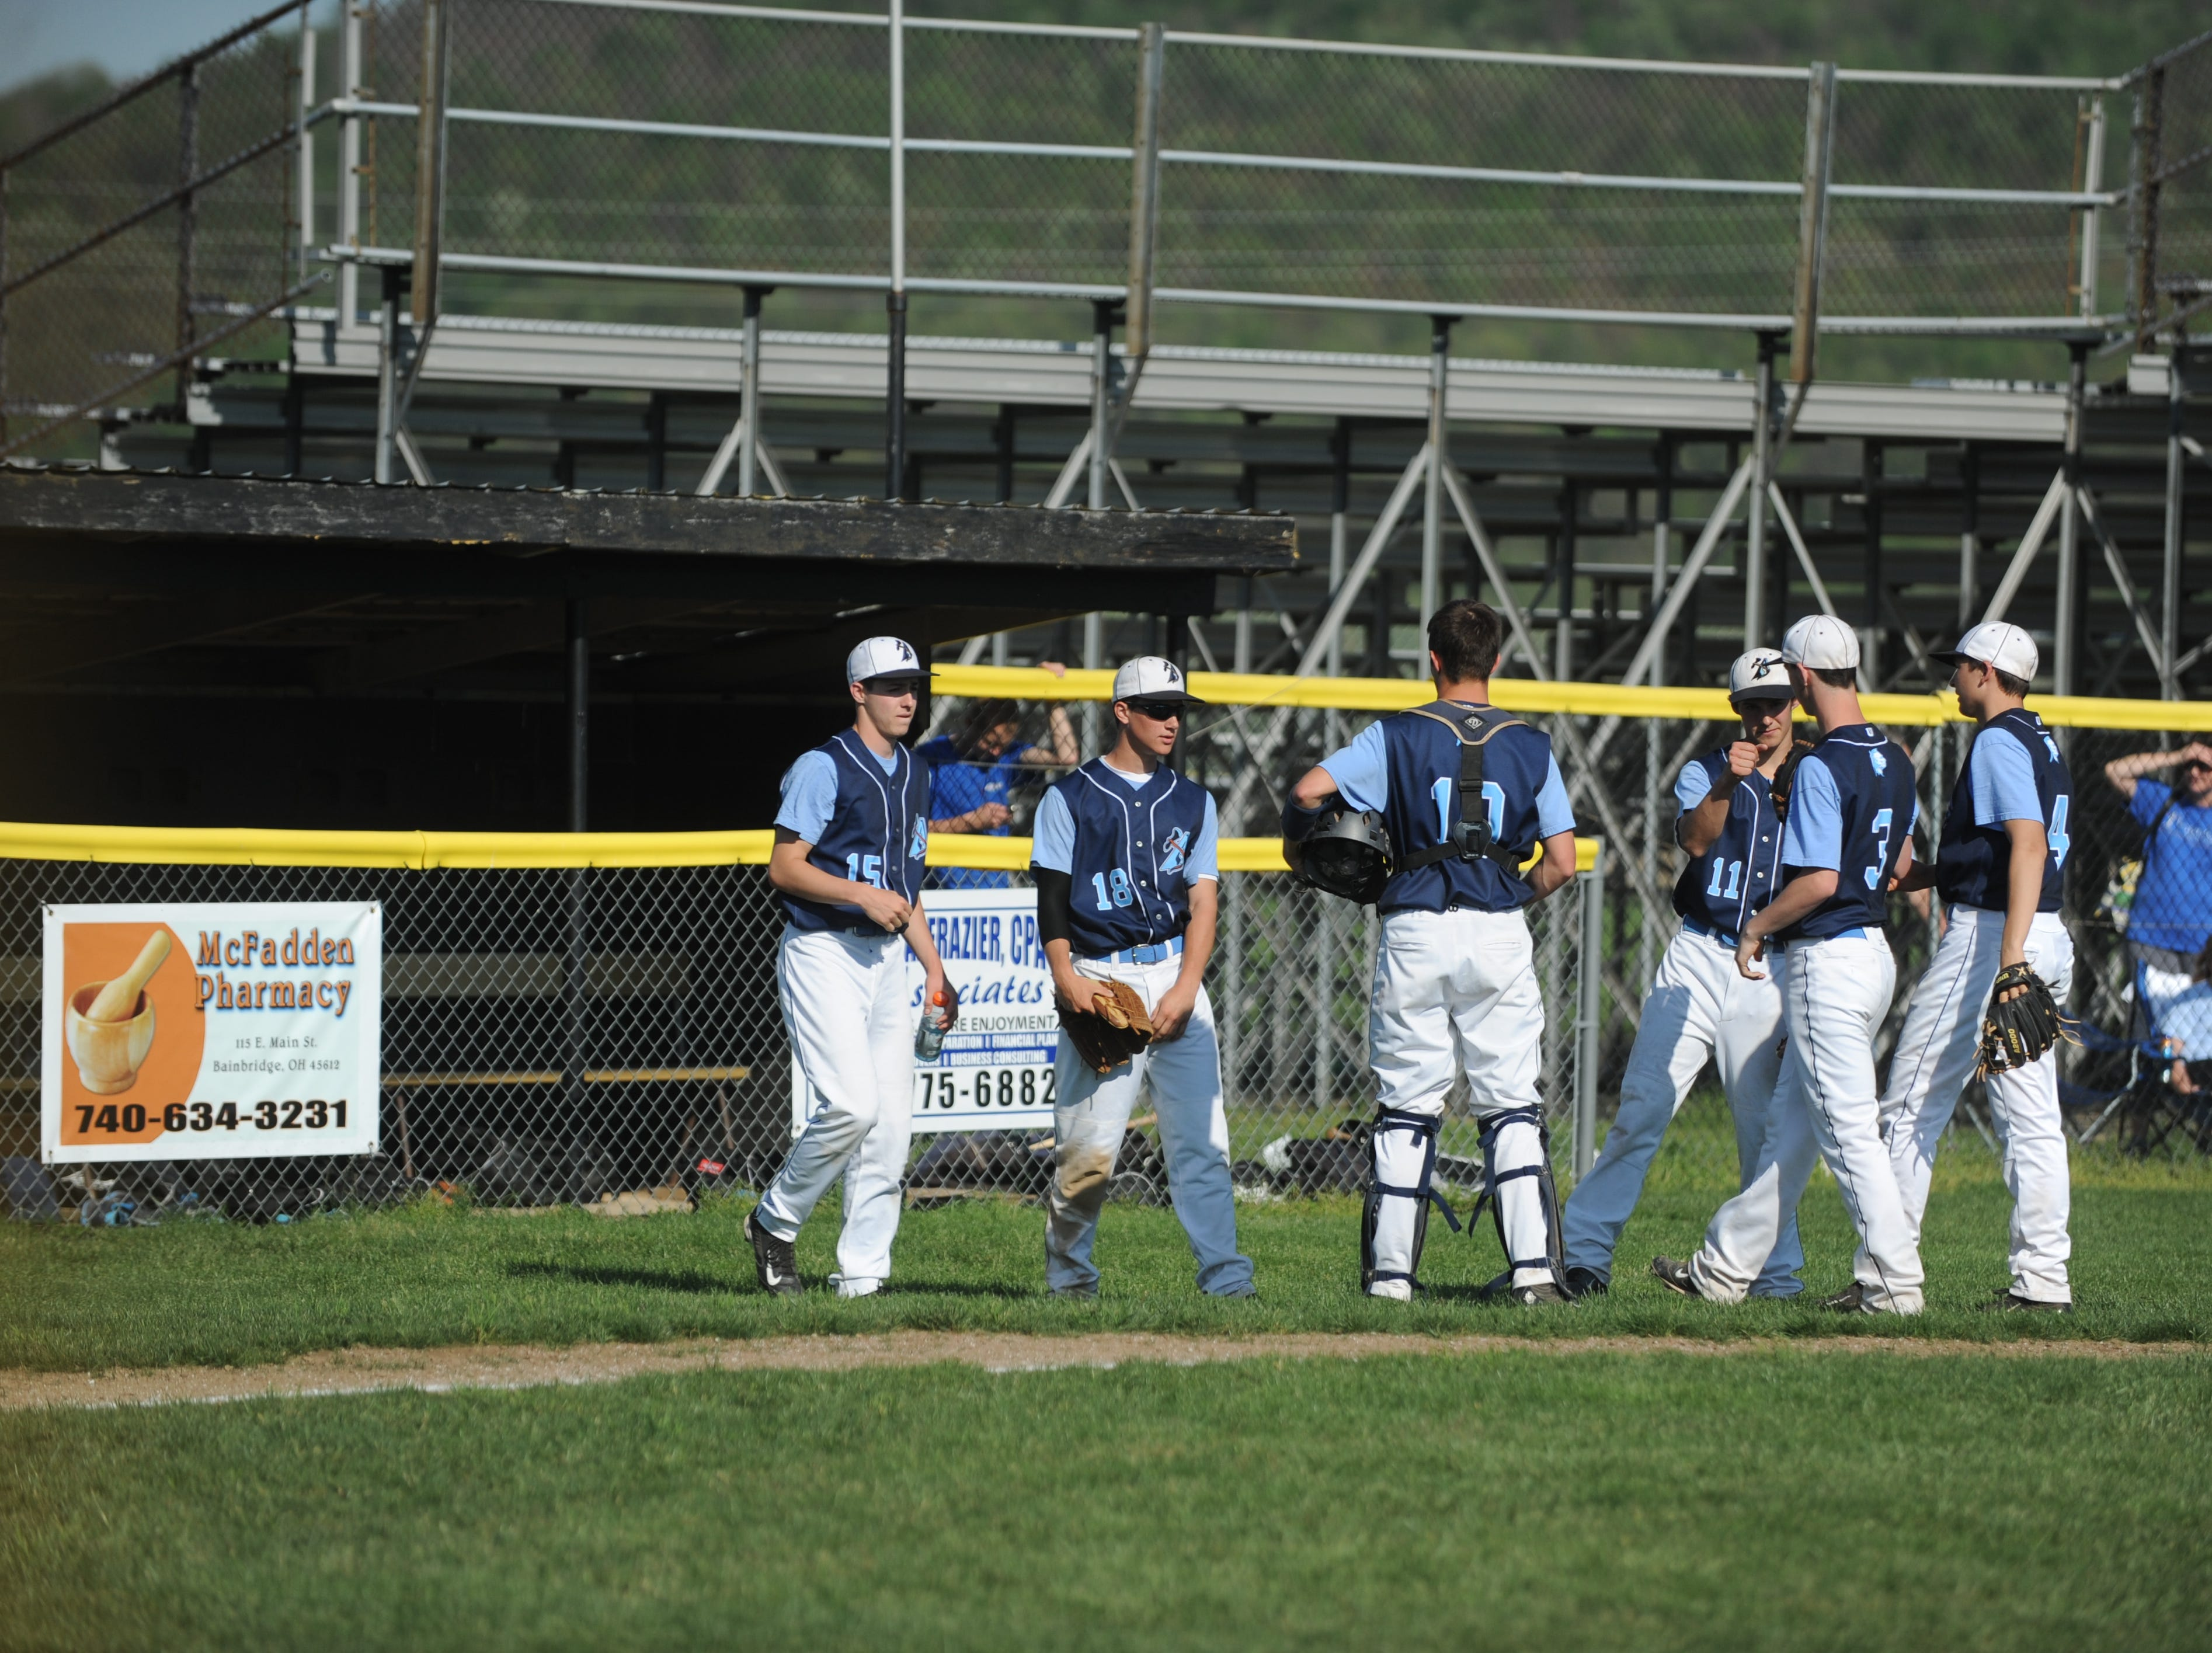 Adena boy's baseball played against Paint Valley at Adena on Monday.